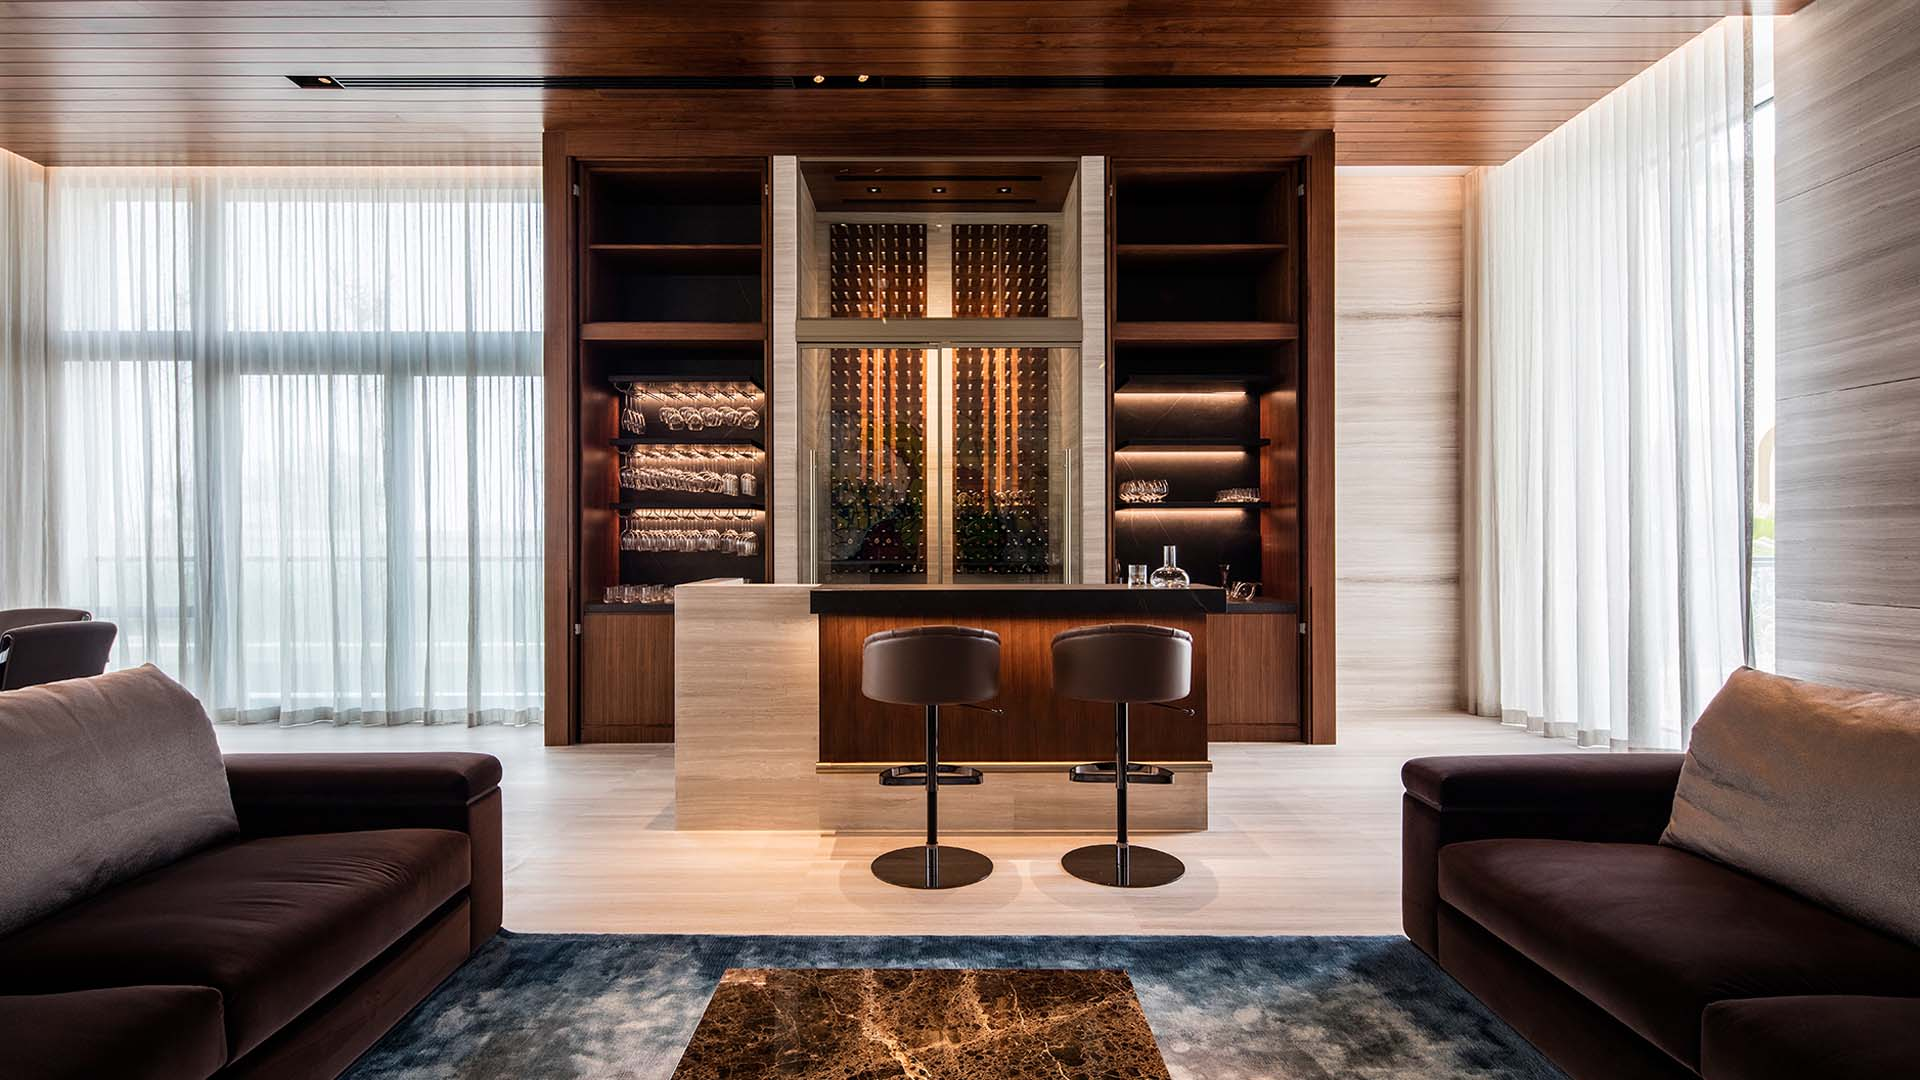 Dubai Interior Designers: The Top 10 Designers You Should Know About dubai interior designers Dubai Interior Designers: The Top 10 Designers You Should Know About anarchitect